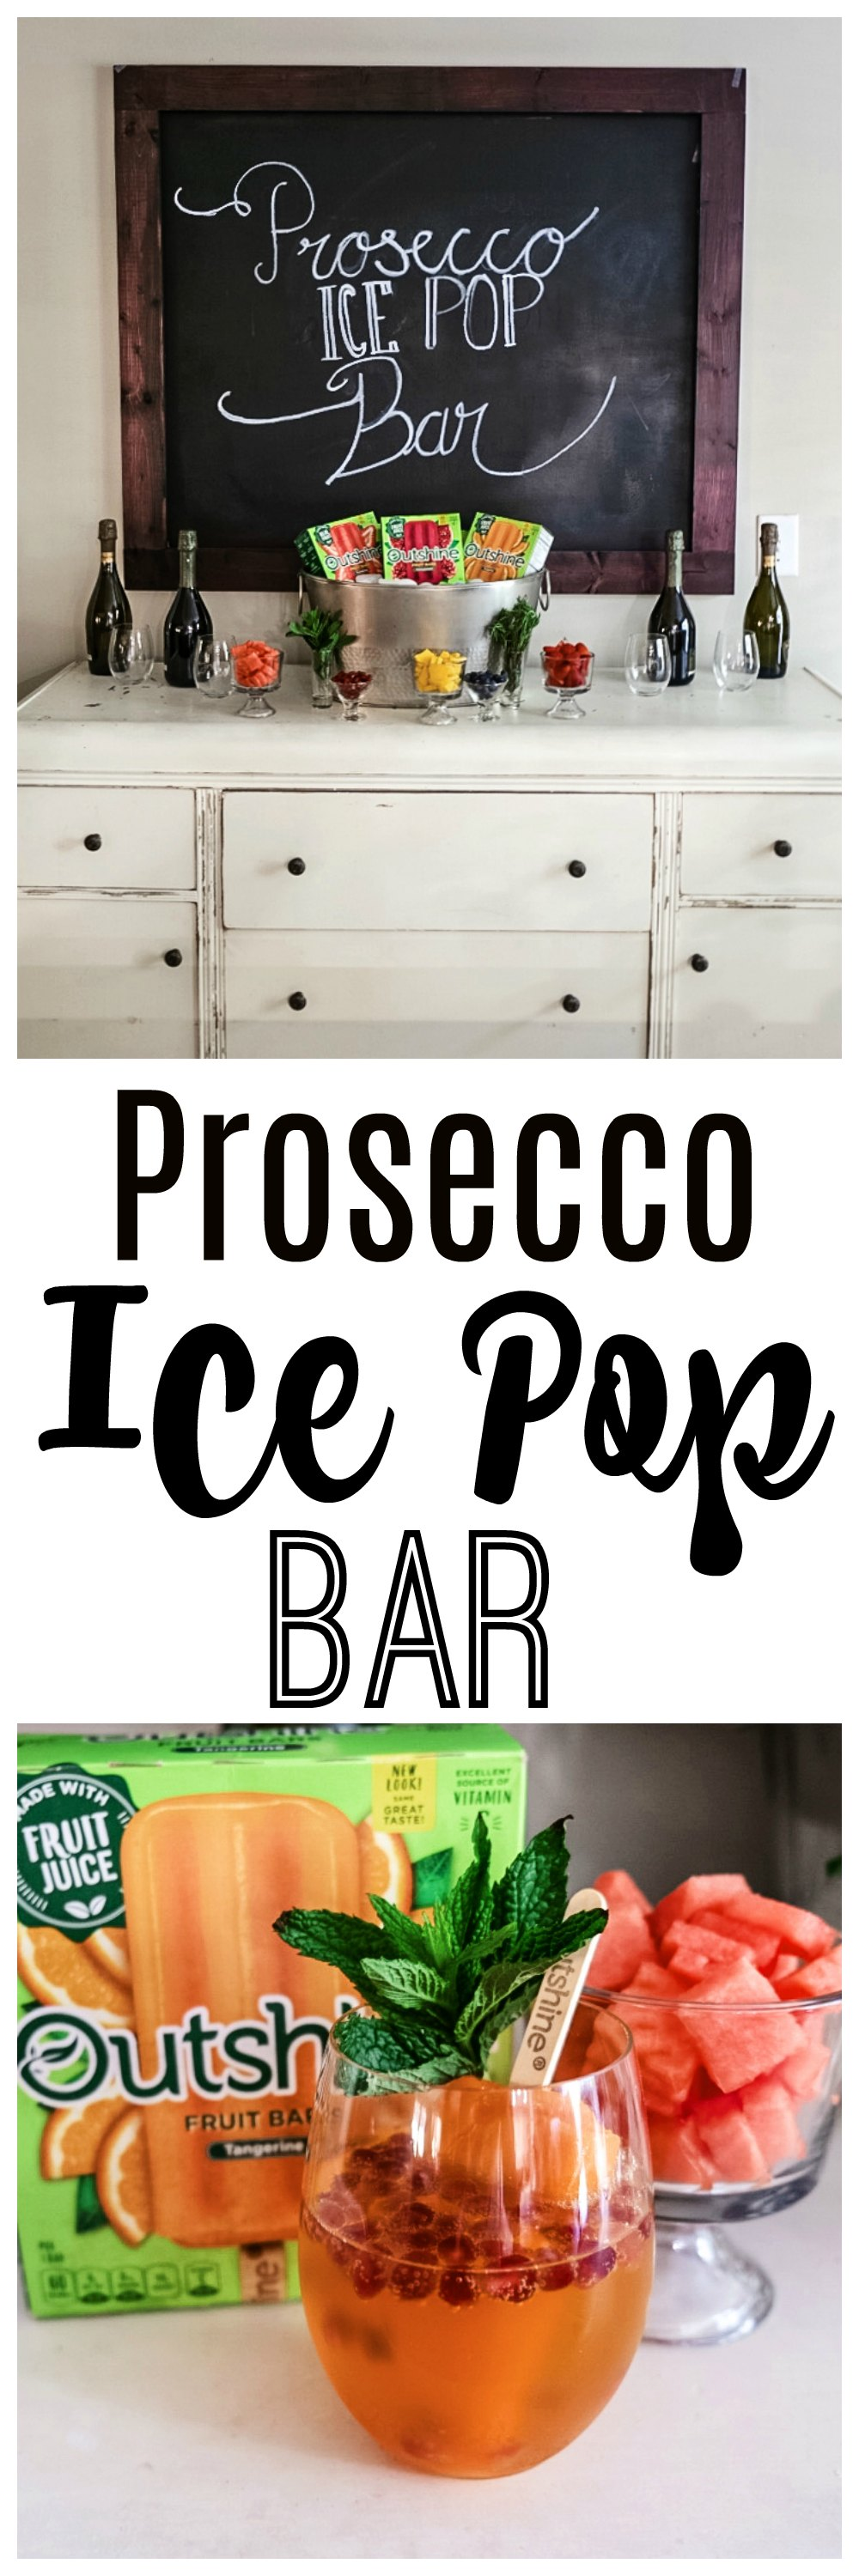 Prosecco Ice Pop Bar featured by popular Atlanta lifestyle blogger Happily Hughes